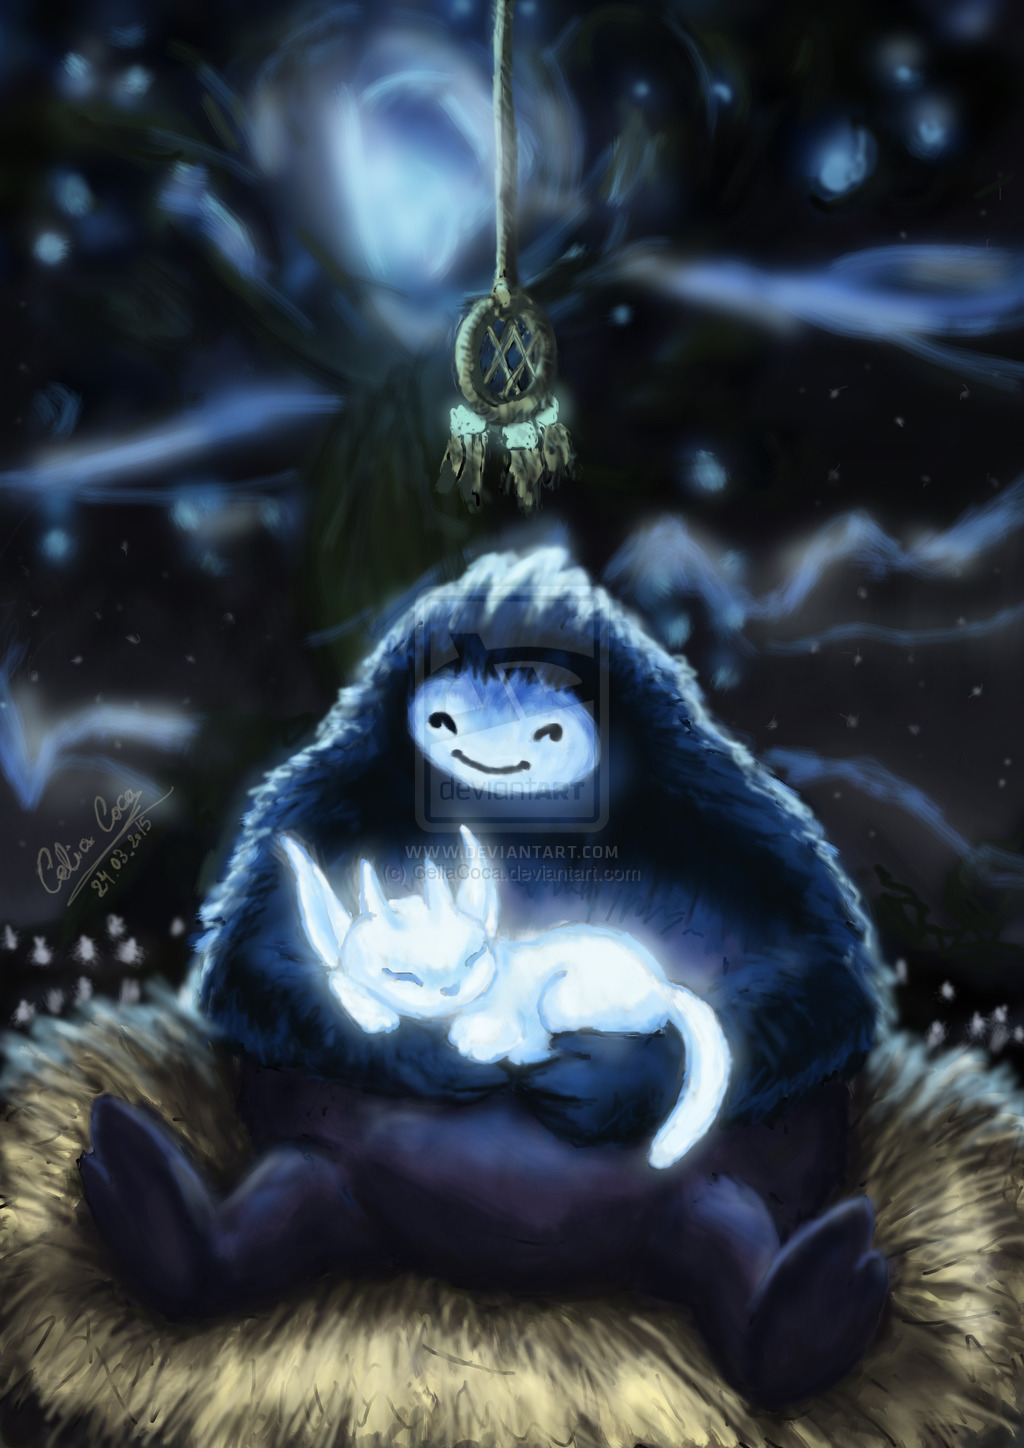 ori_and_naru_by_celiacoca-d8olcby